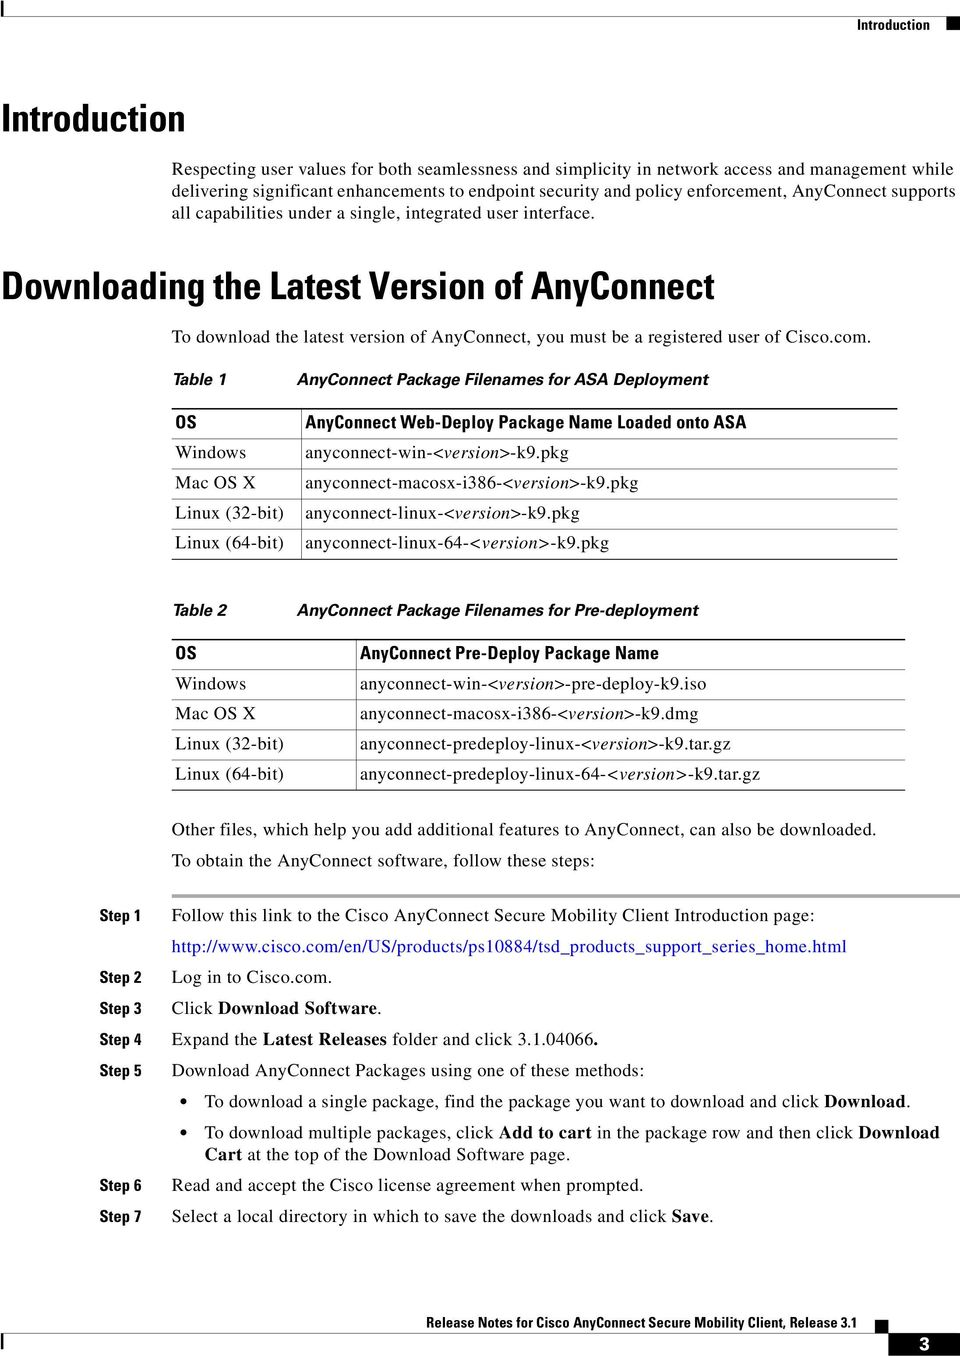 Release Notes for Cisco AnyConnect Secure Mobility Client